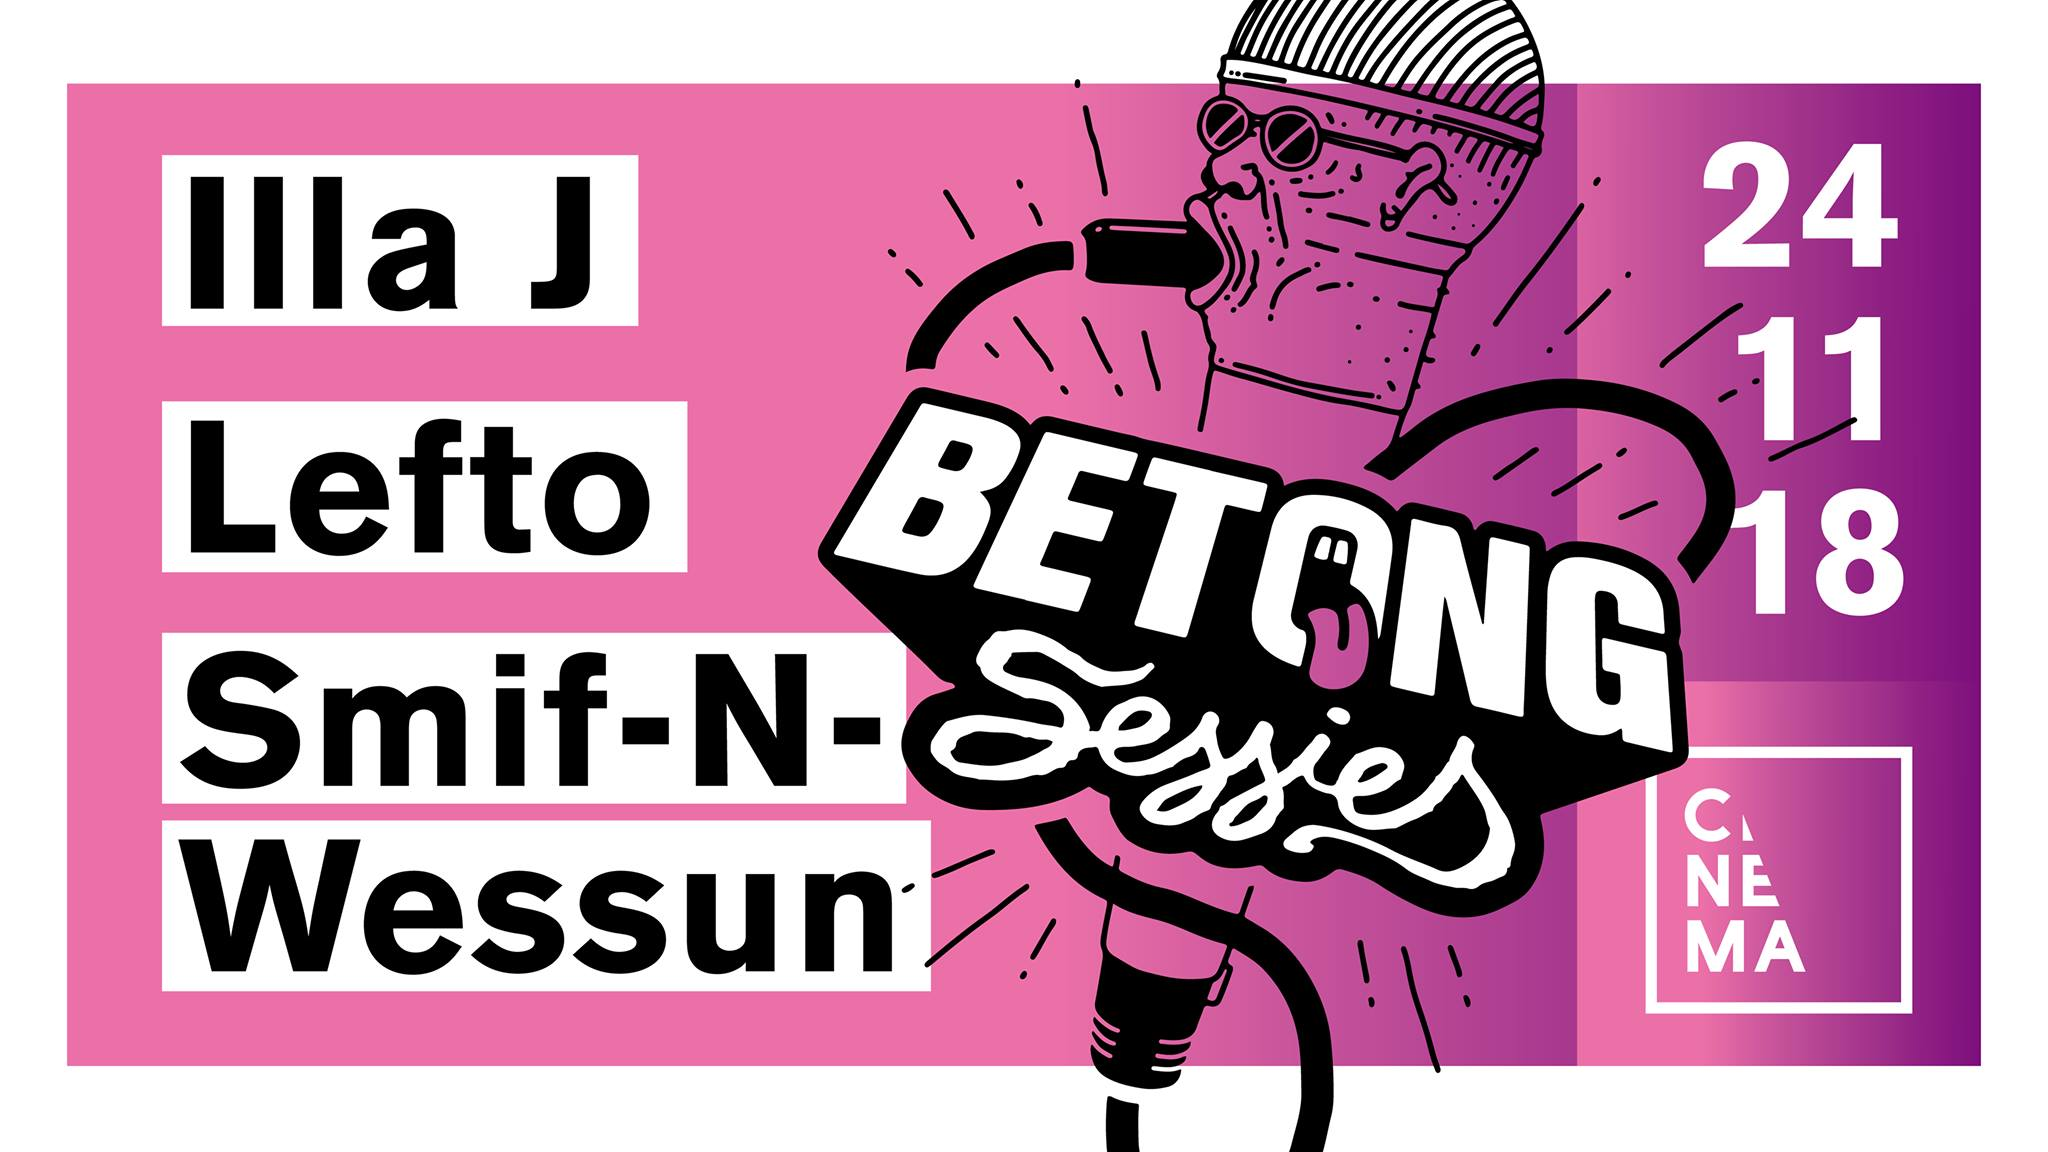 18 11 22 Betong Sessies Cinema Zaterdag 24 november 2018